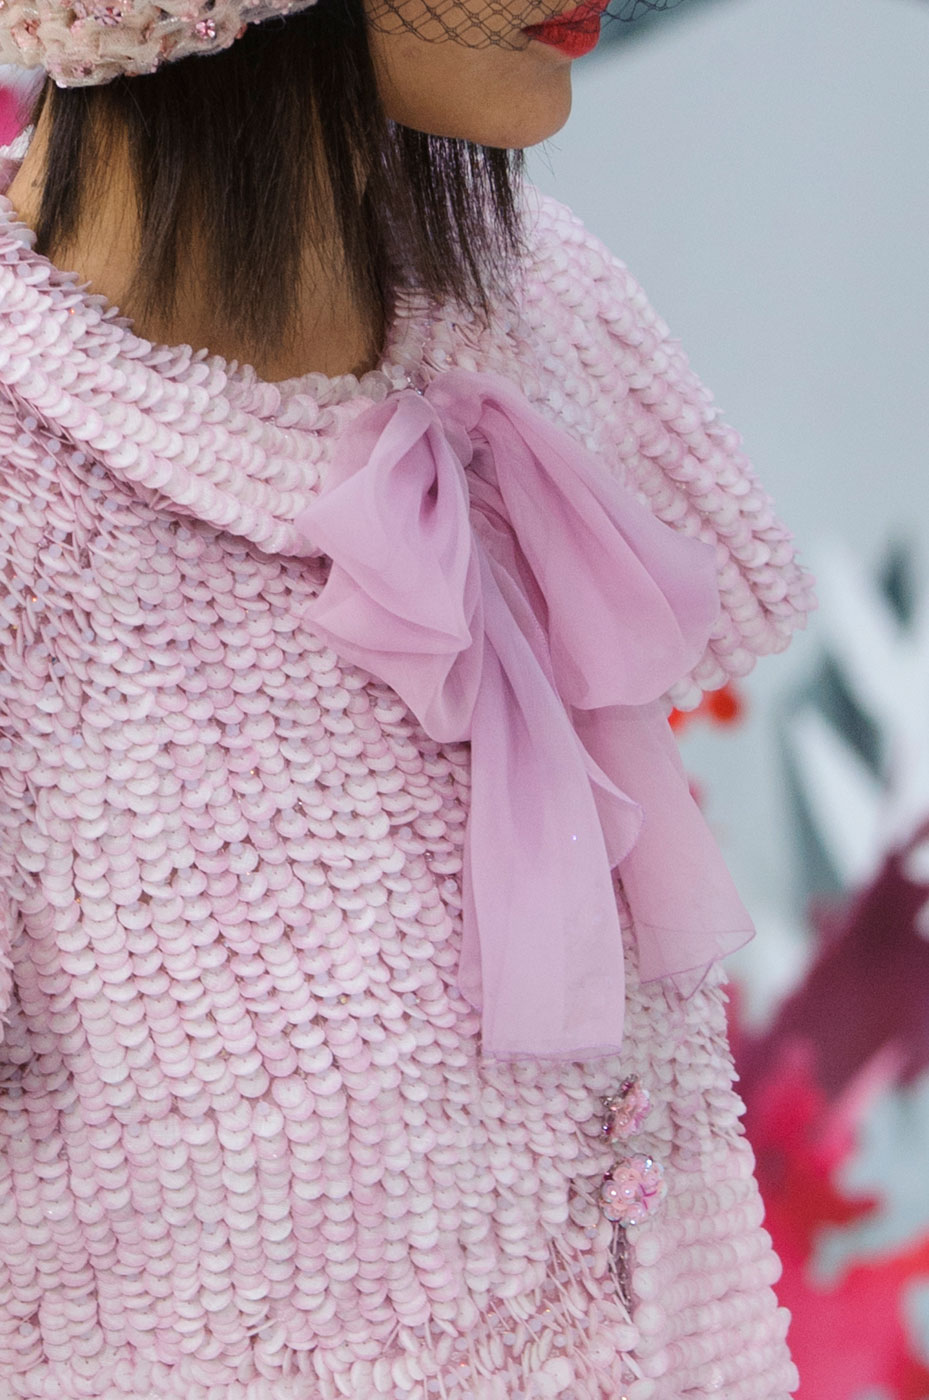 Chanel-fashion-runway-show-close-ups-haute-couture-paris-spring-summer-2015-the-impression-114